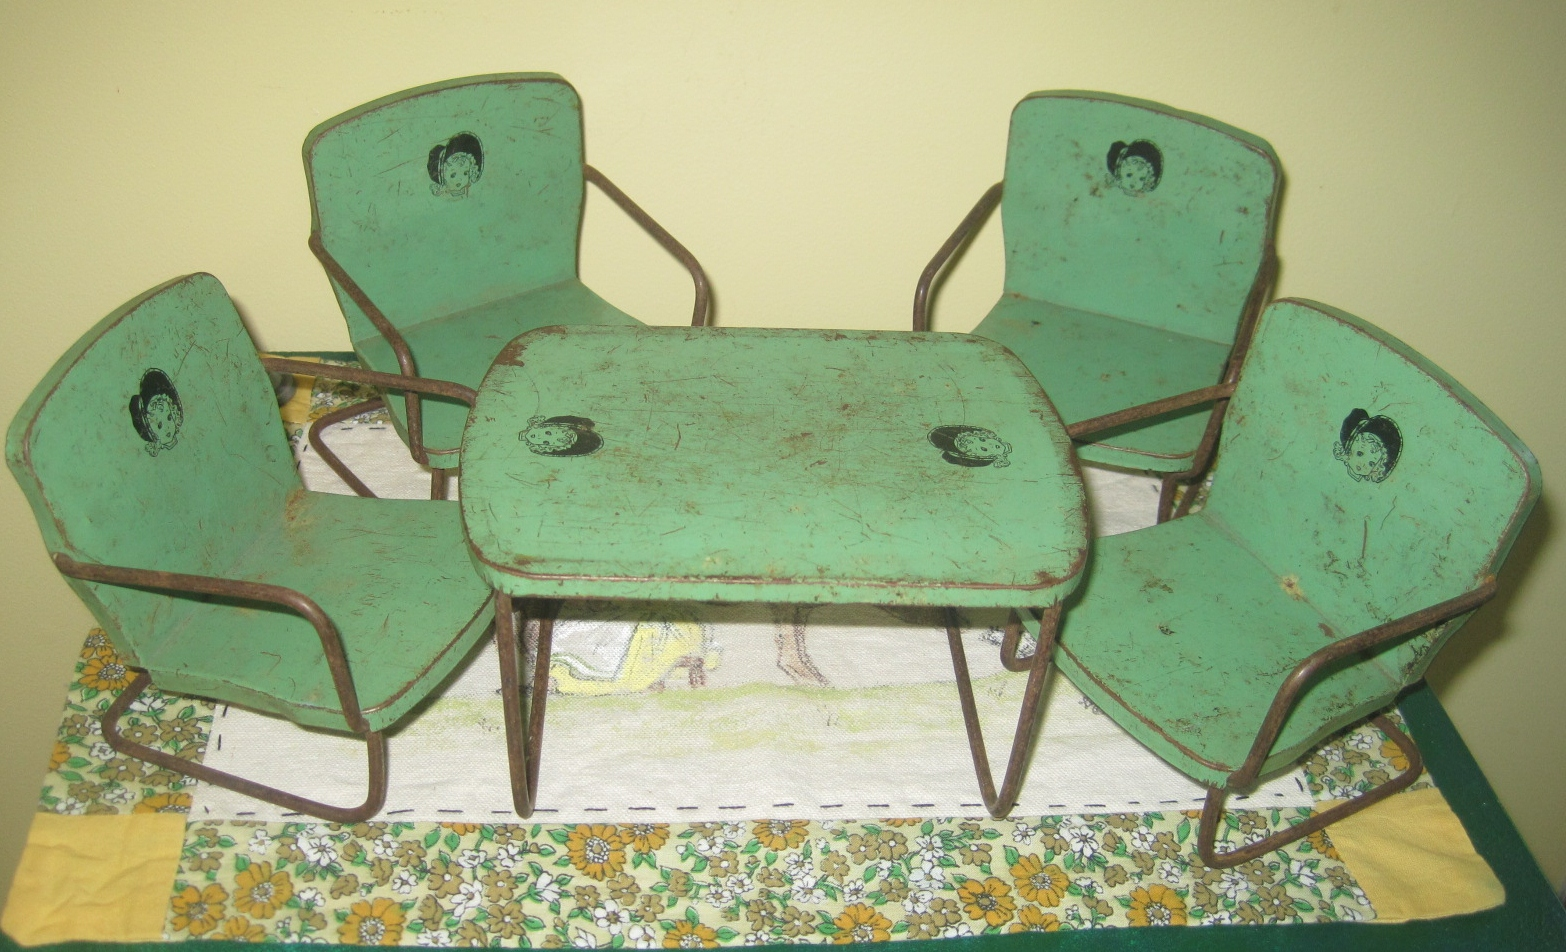 favorites  u2013 the covered bridge antique mall in the mt  healthy suburb of cincinnati  this darling 1930s 40s era metal table and chair set in depression     metal doll table and chairs   lillian u0027s cupboard  rh   lillianscupboard wordpress com